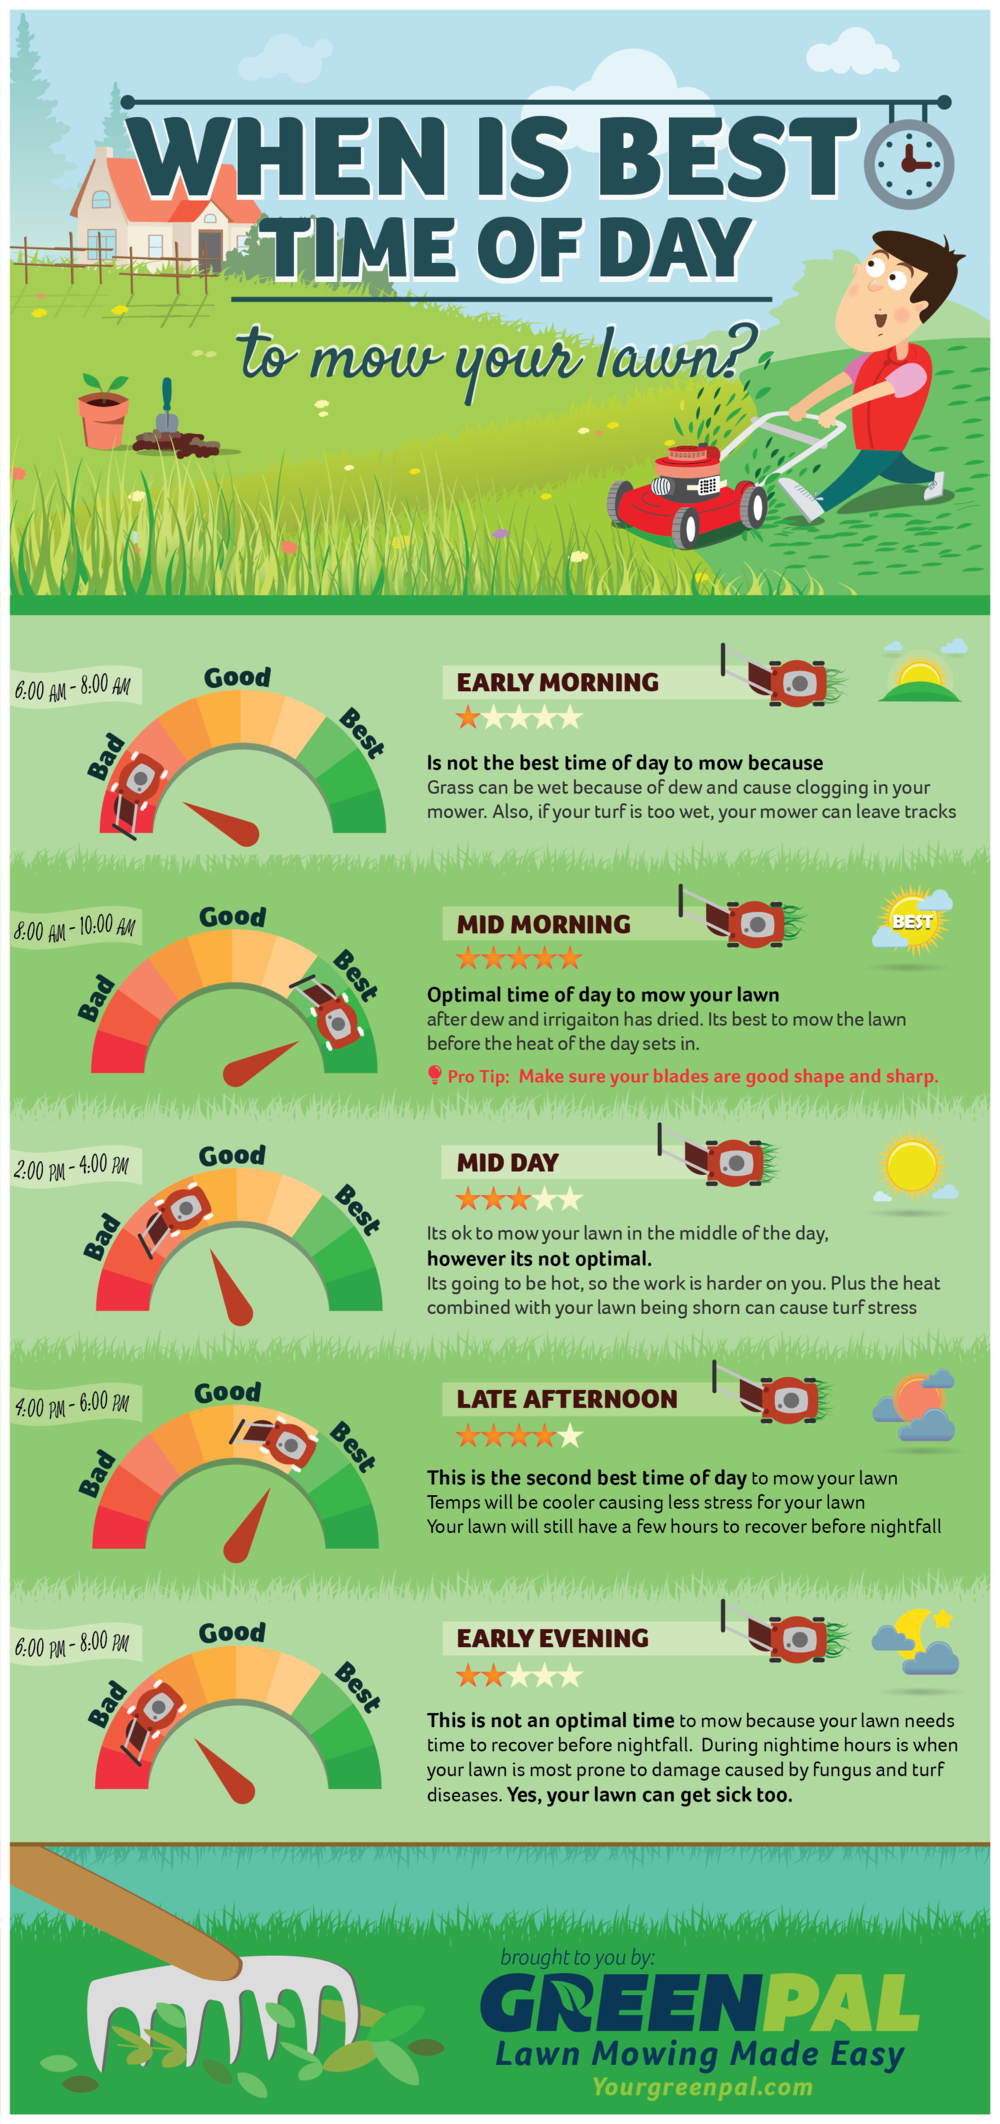 When is Best Time of Day to Mow Your Lawn? infographic